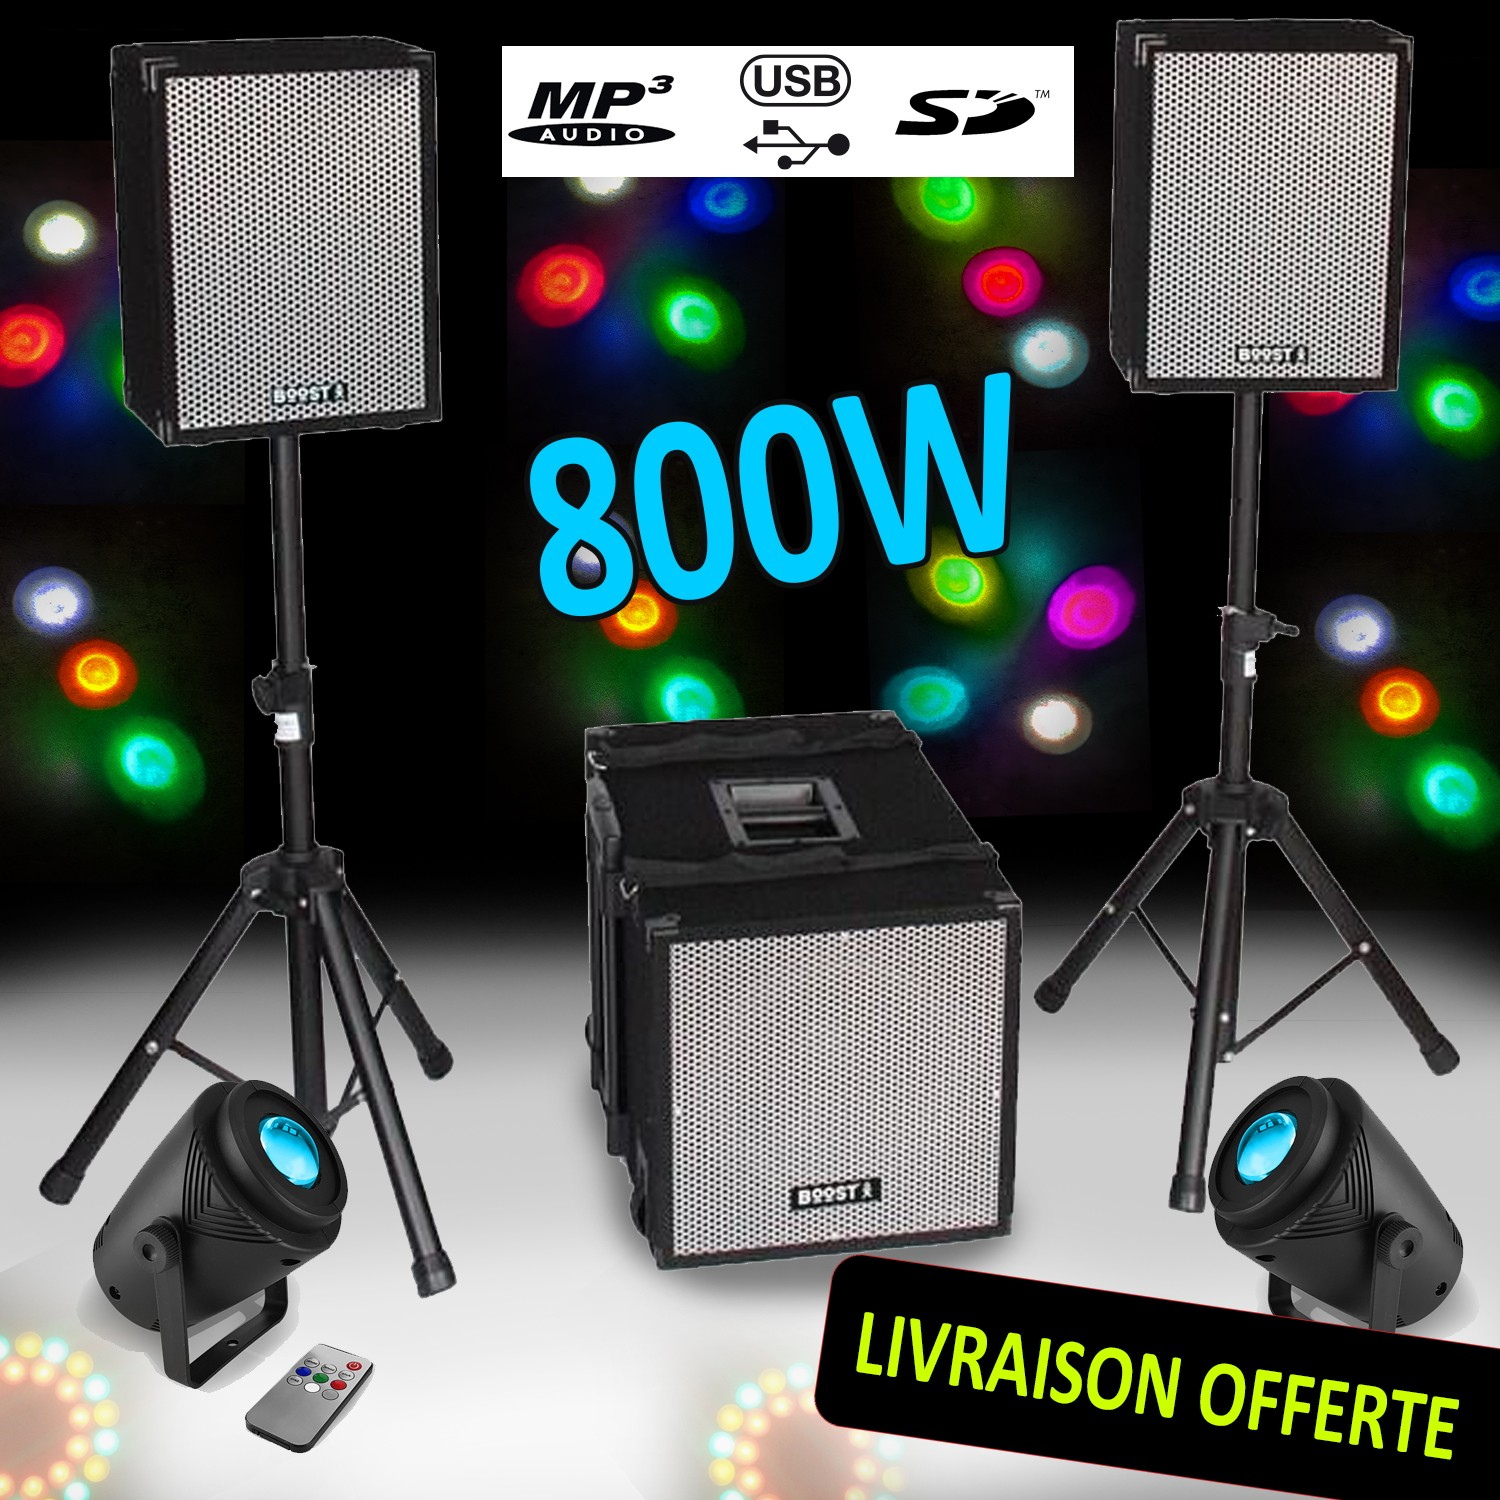 Bi-Amplified Mp3 800W Subwoofer + 2 Satellites + 1 208 Feet Boost à Jeux Flash A 2